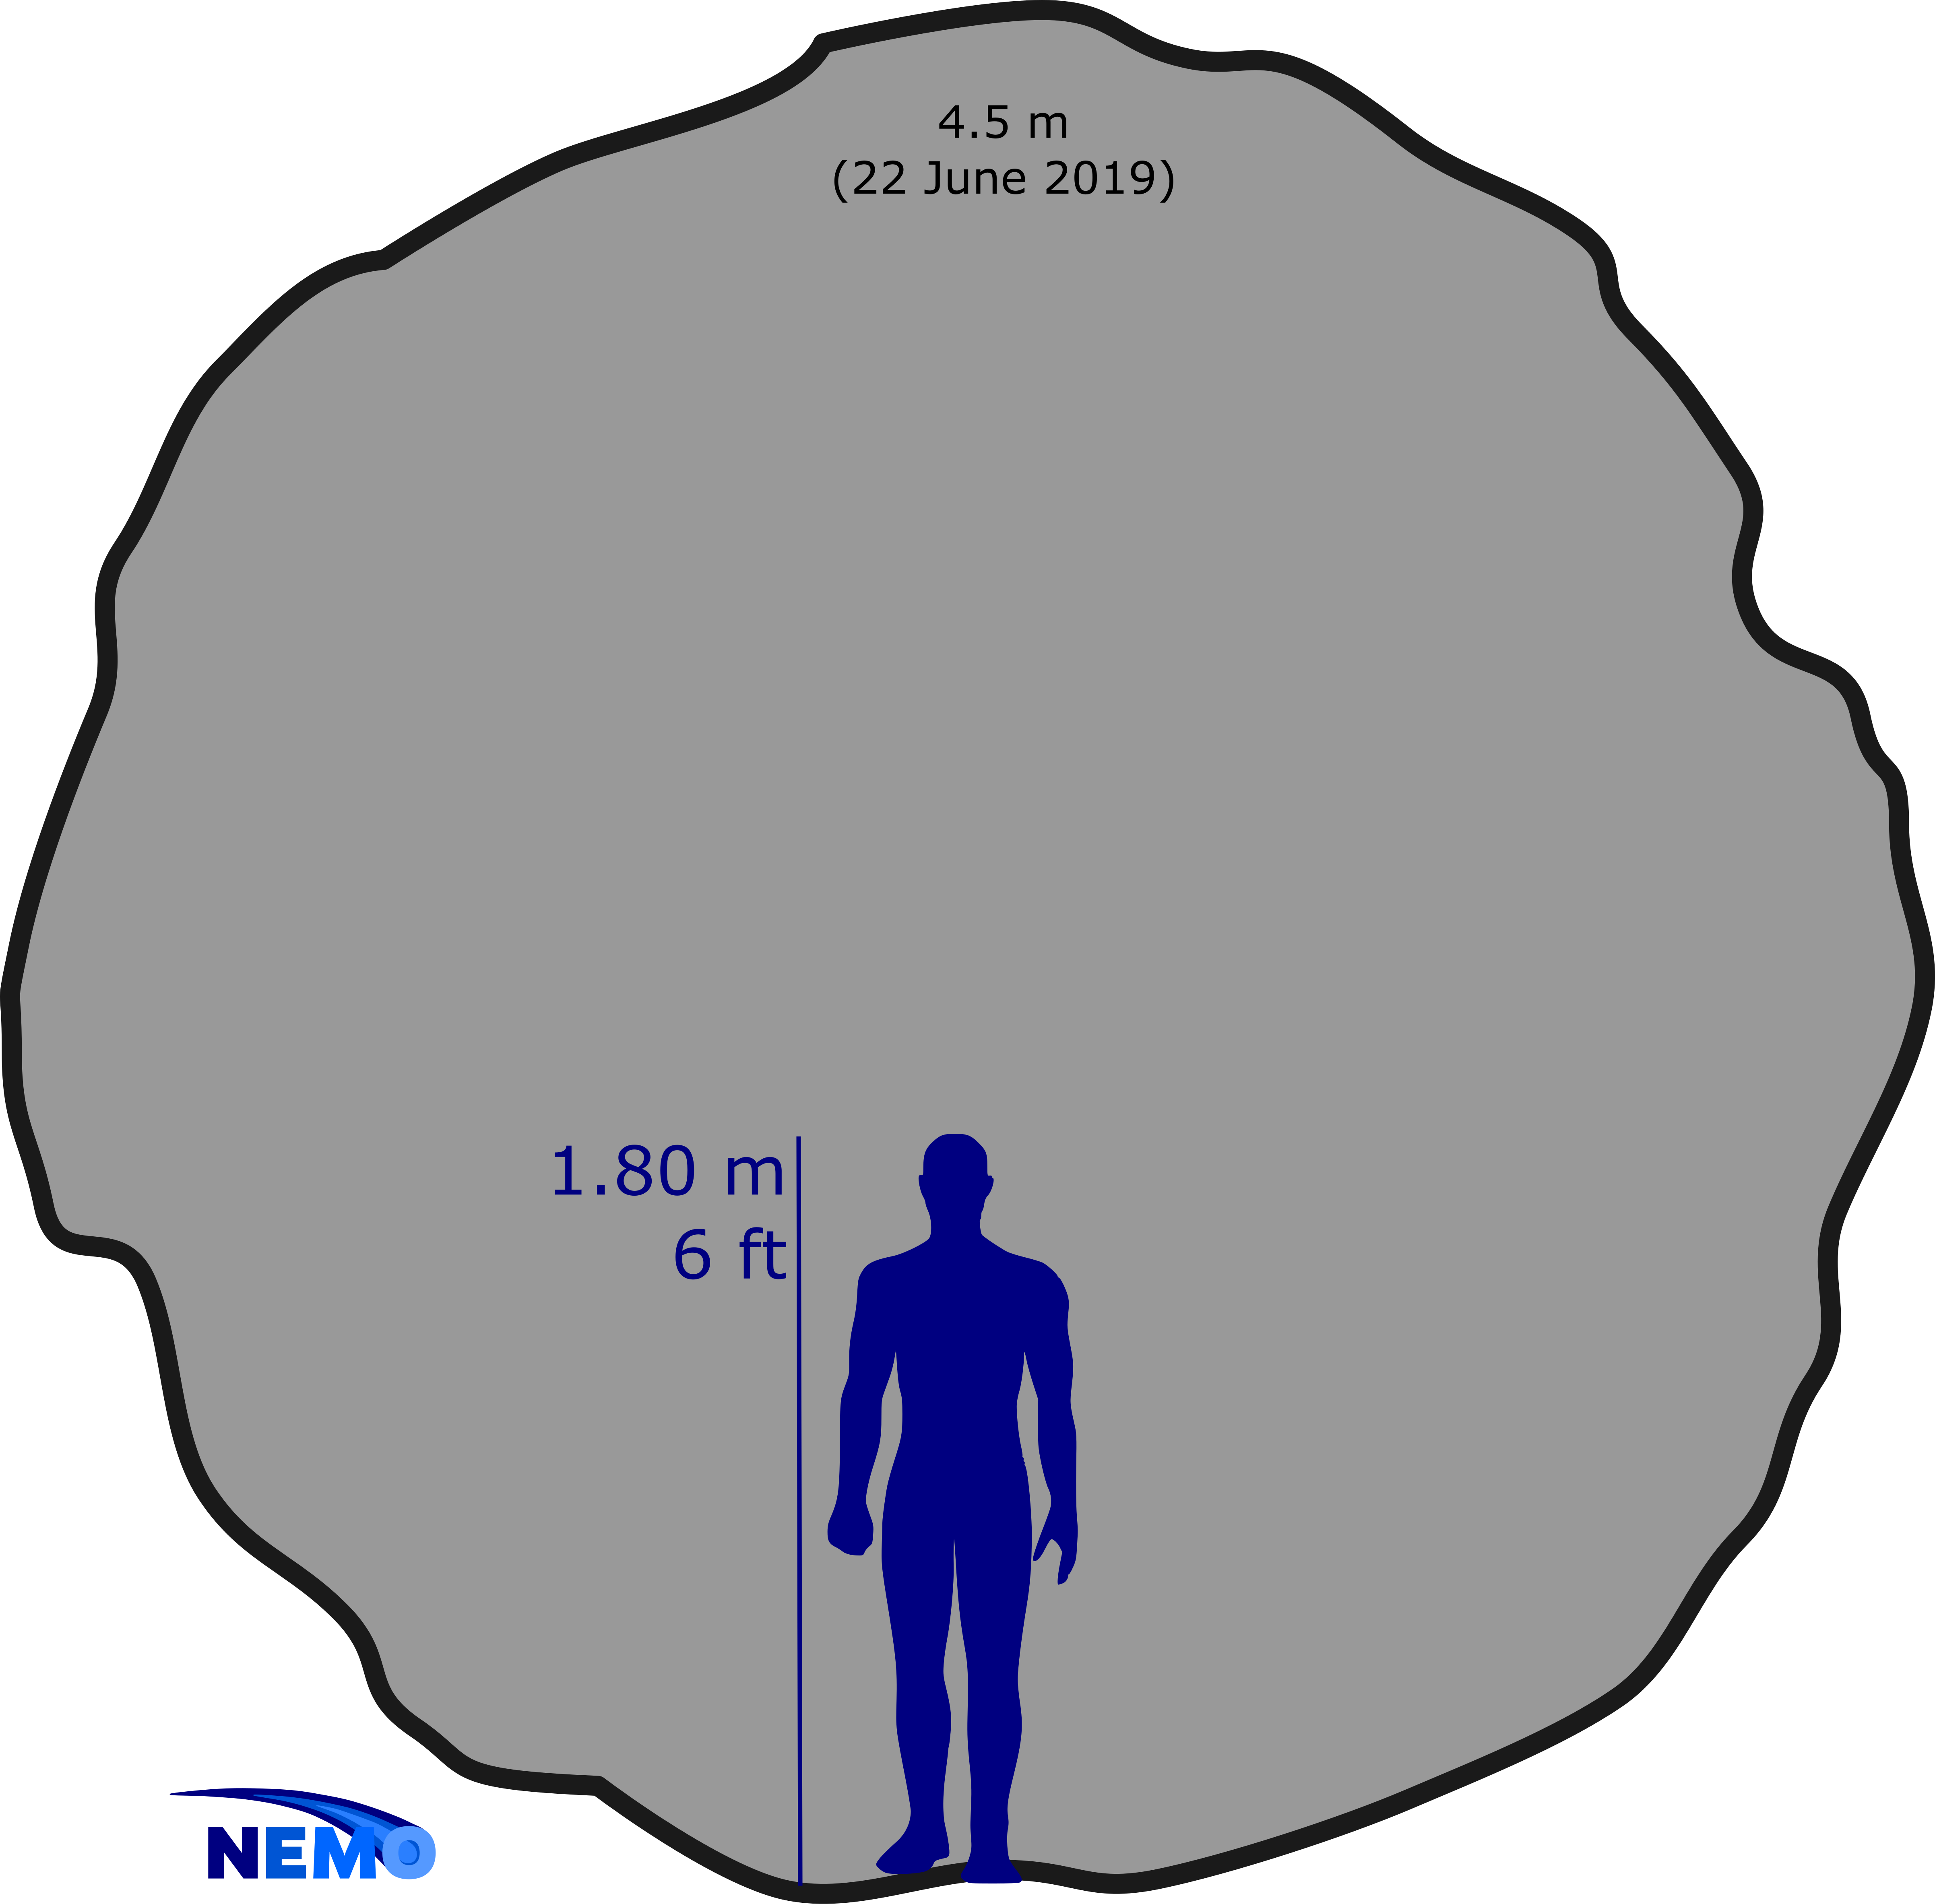 The 4.5 m asteroid from 22. June 2019